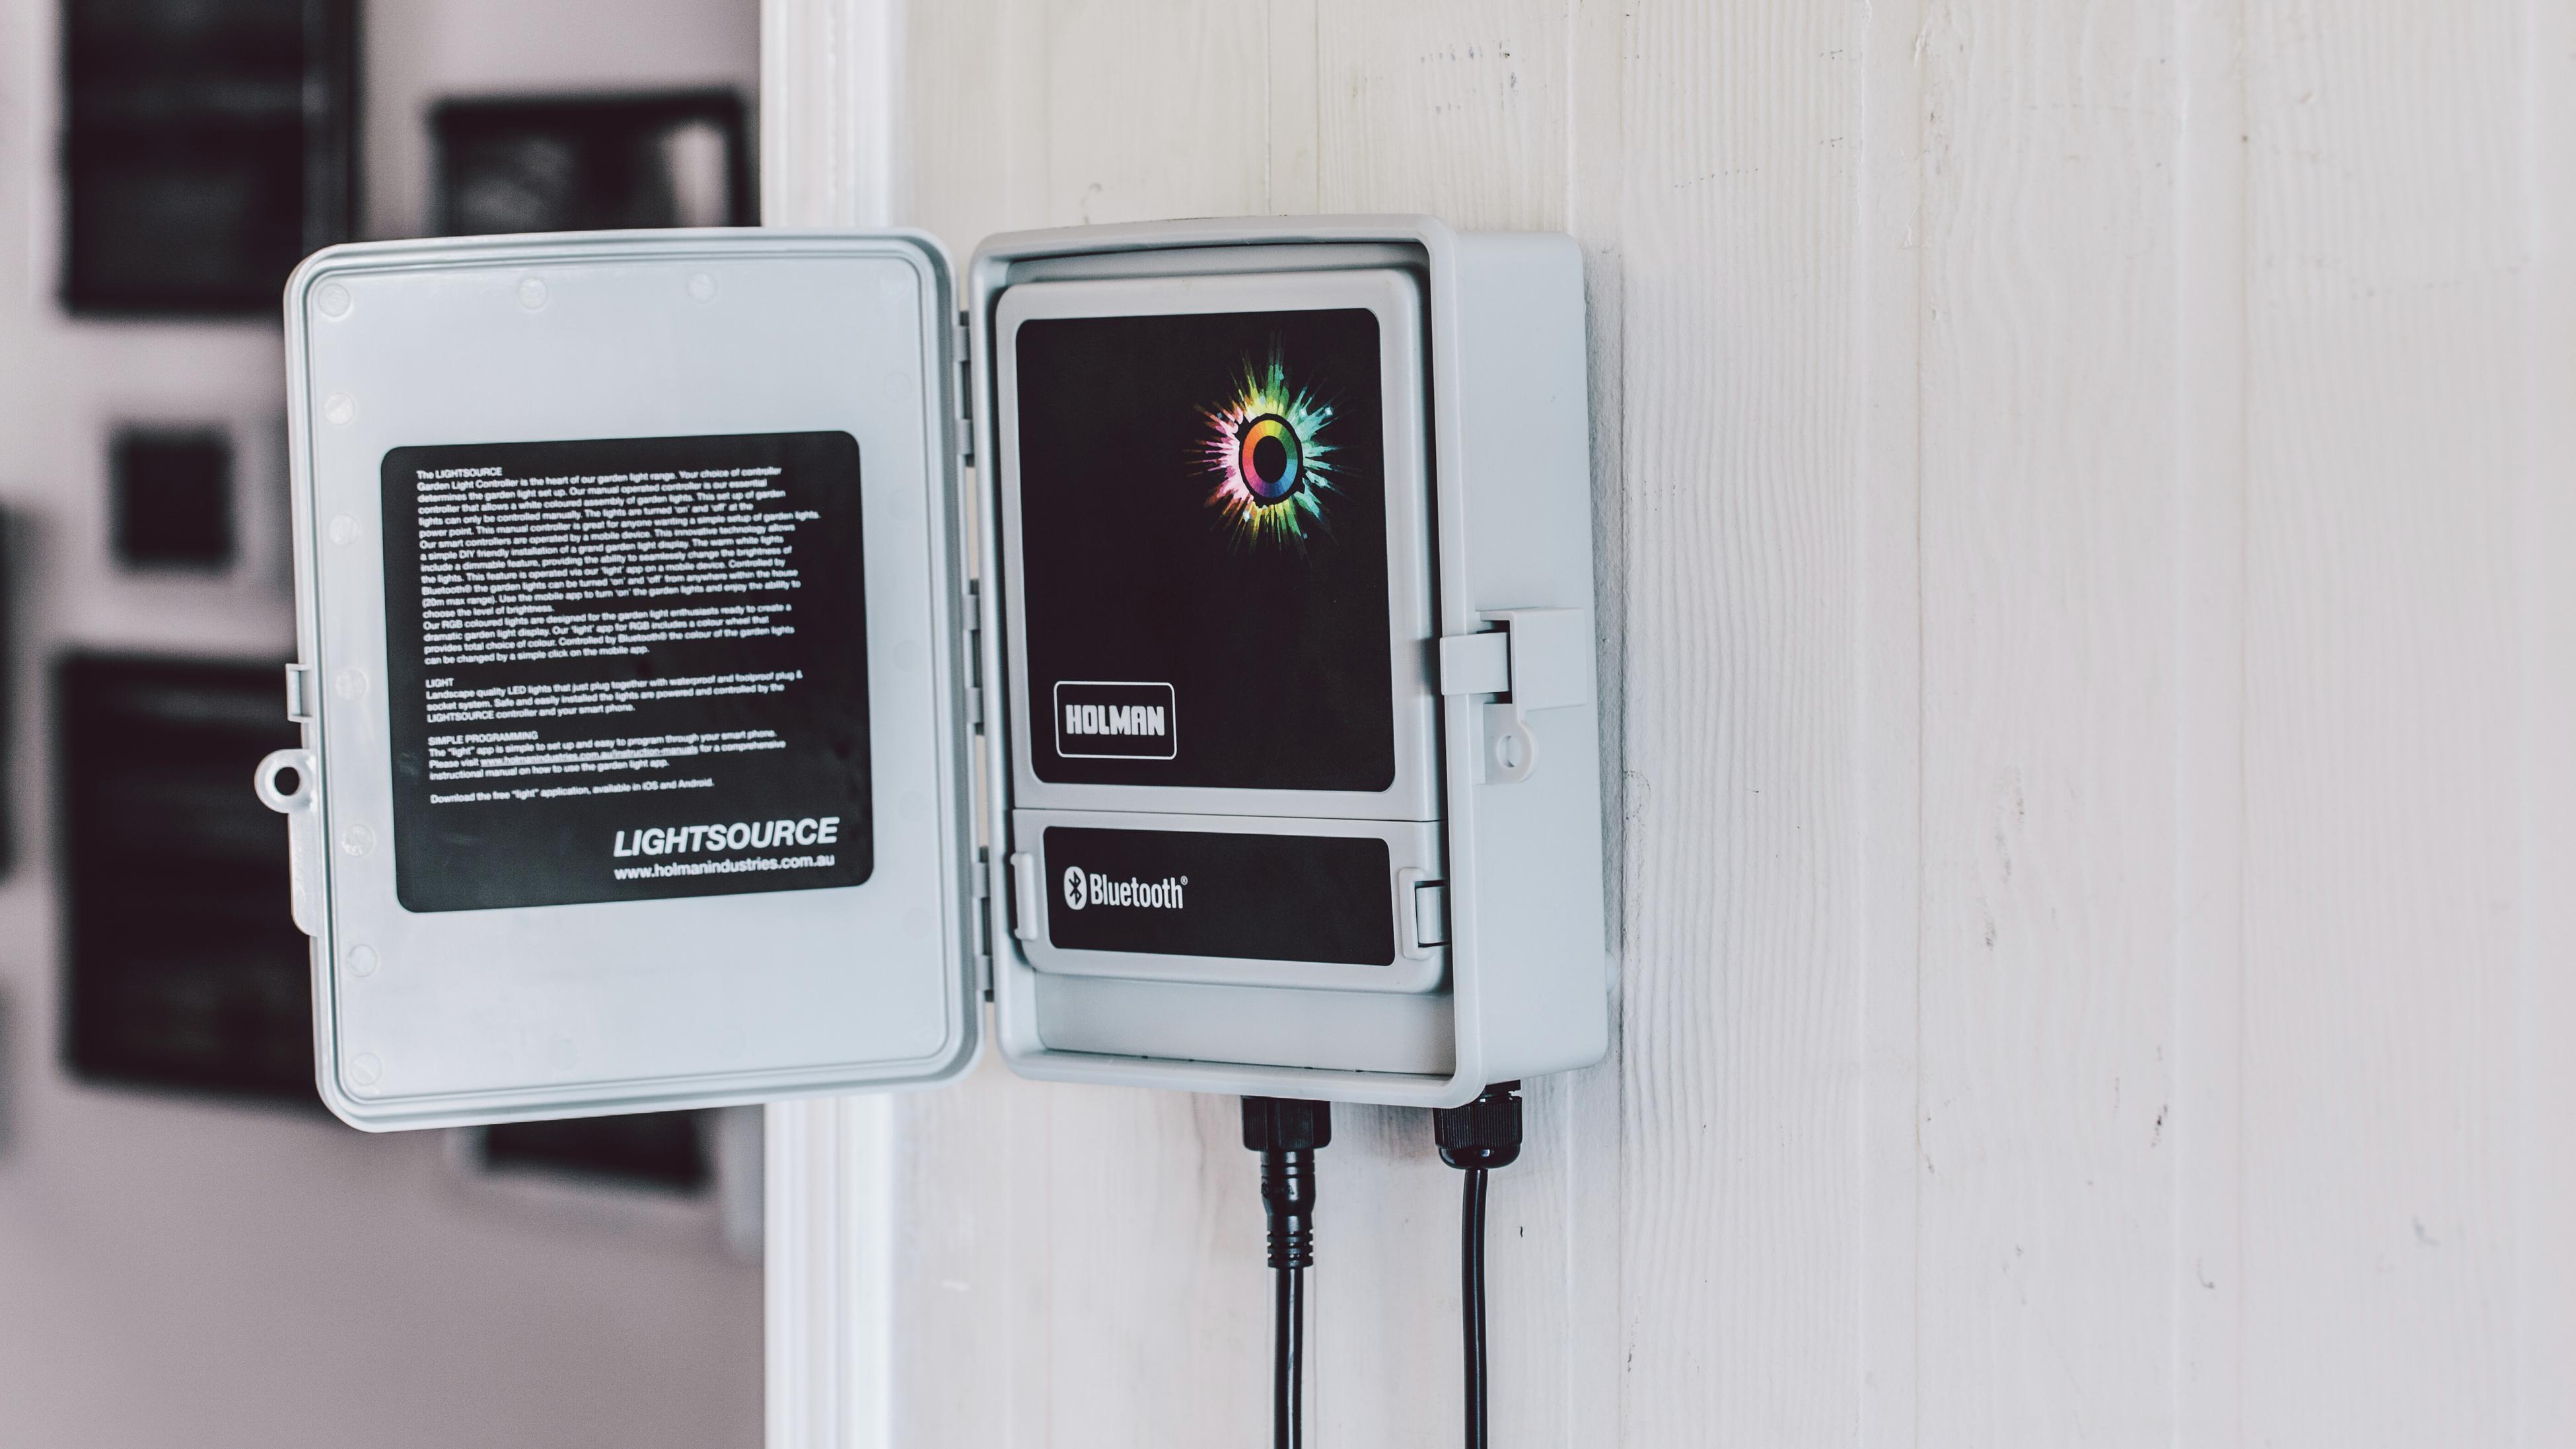 A Holman smart garden control panel attached to a wall.